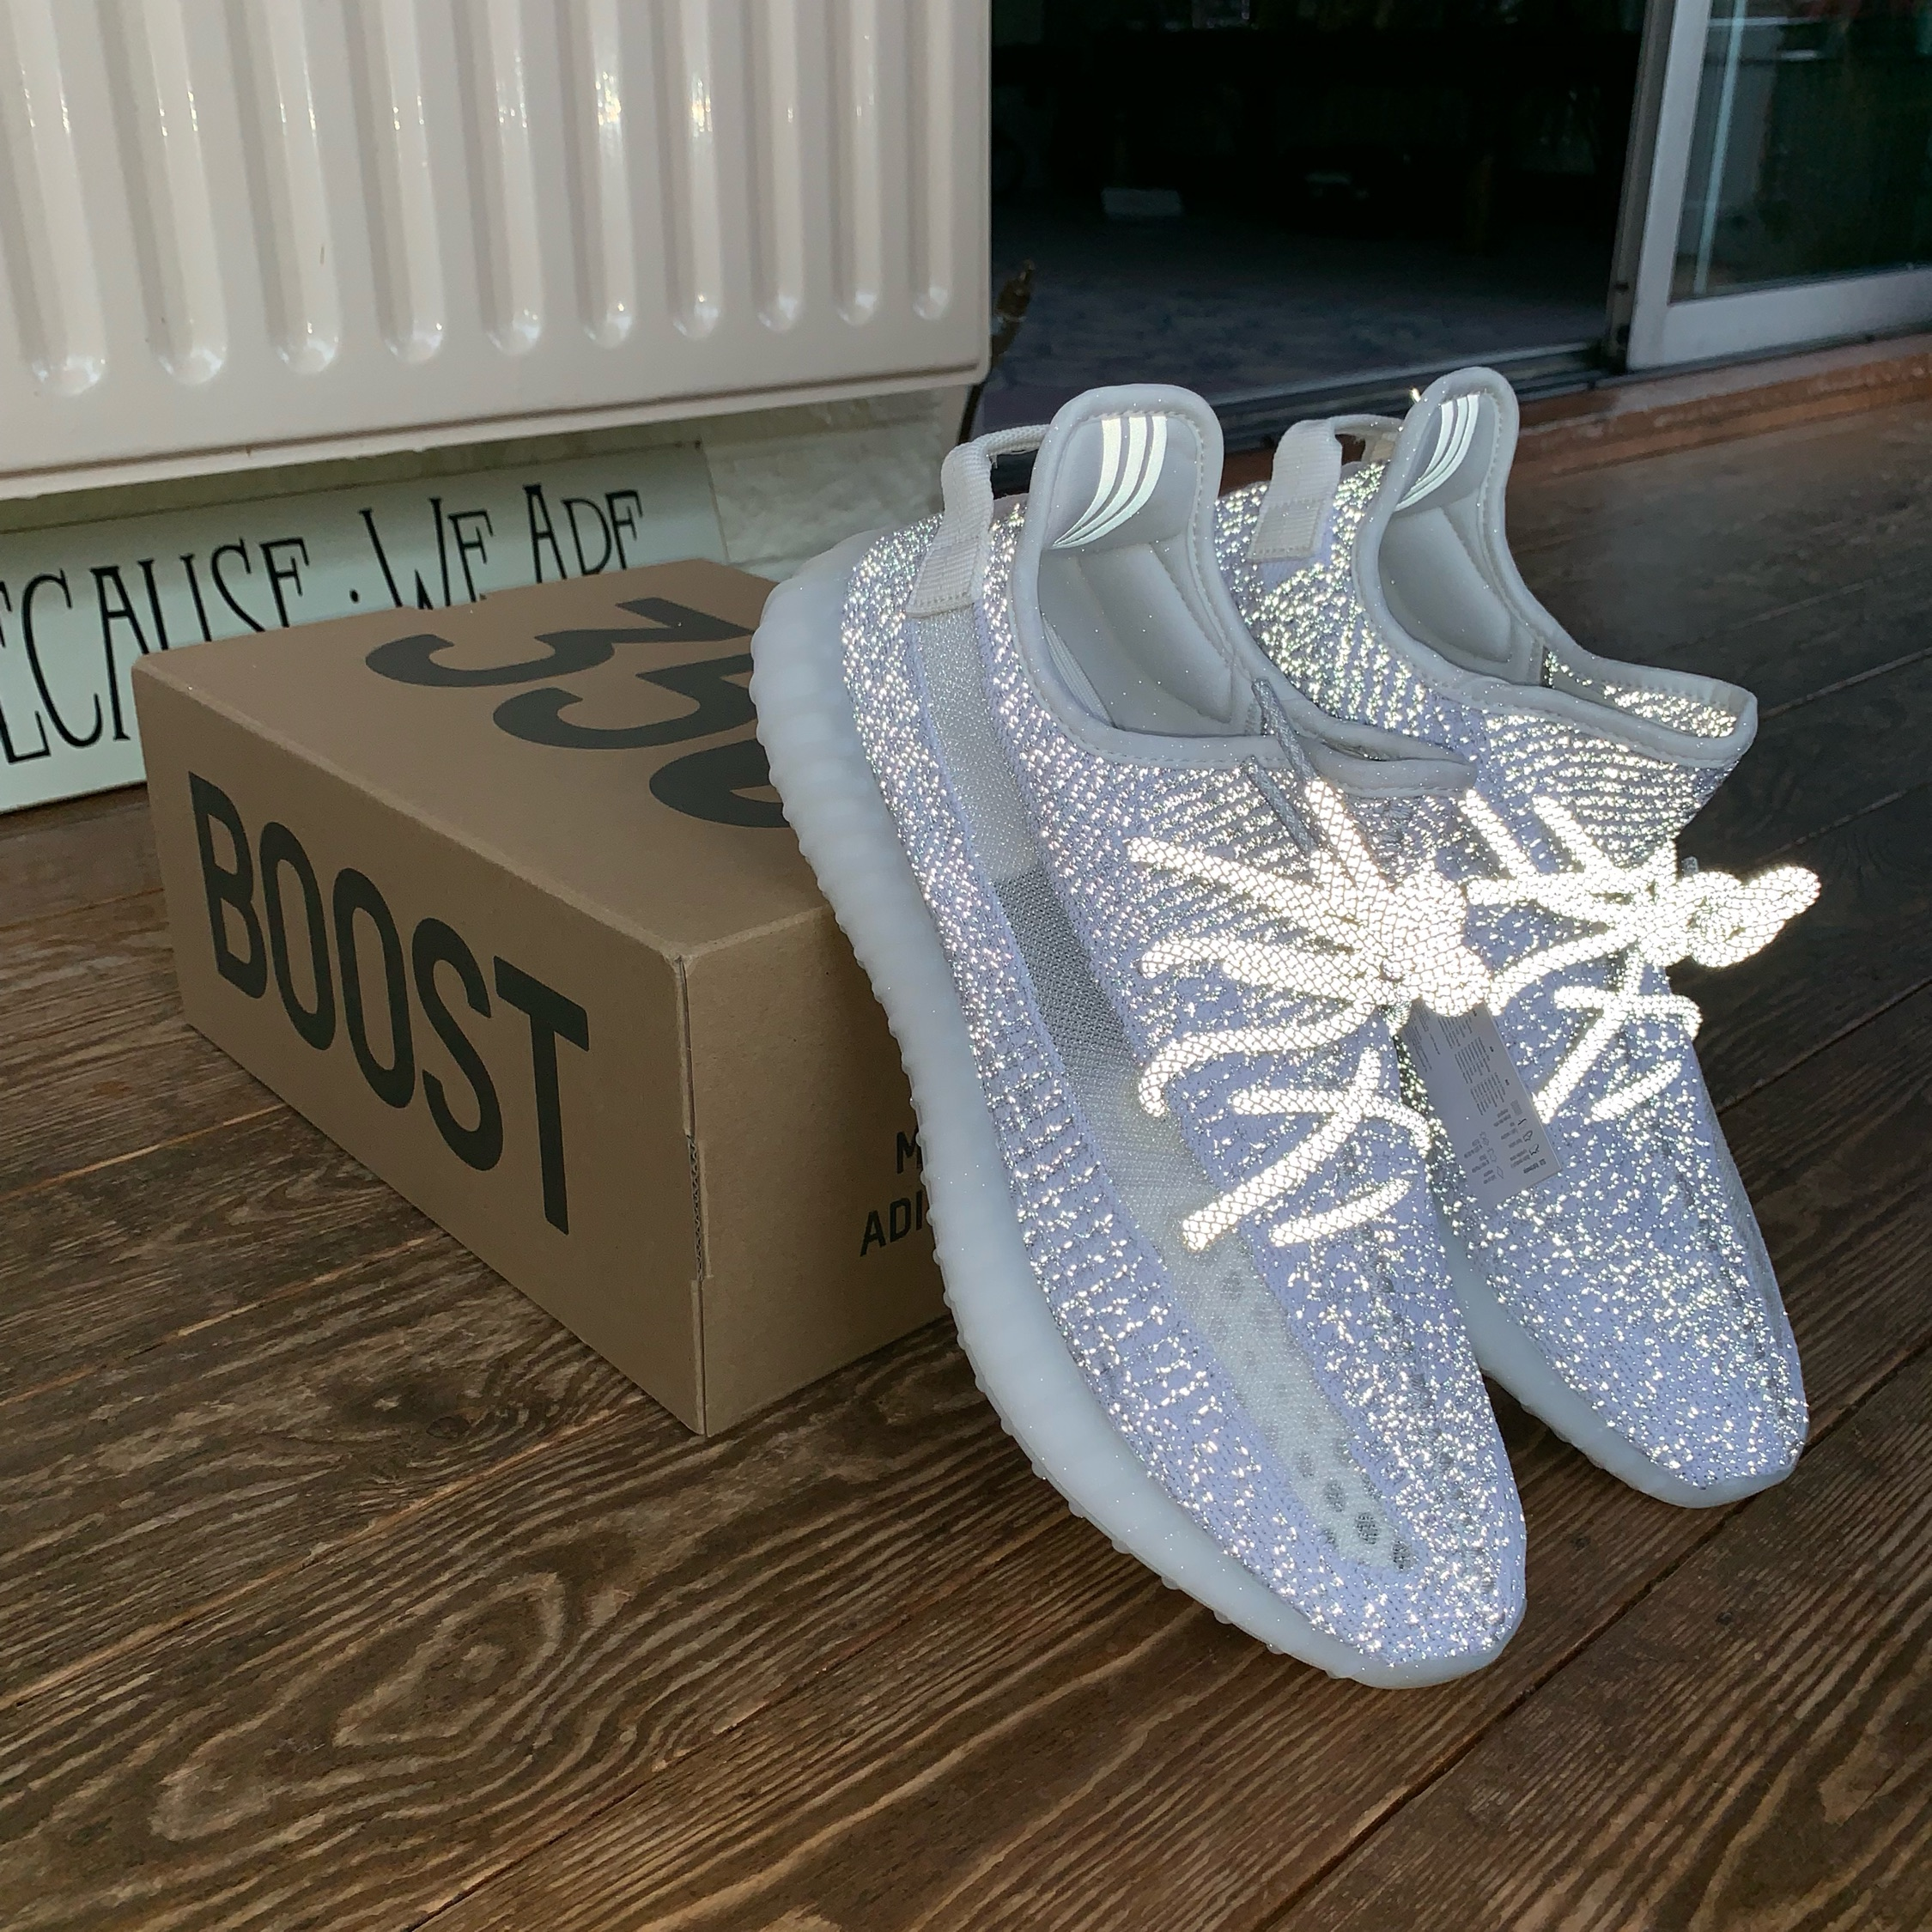 c95a506535bb2 Adidas Yeezy Boost 350 V2 Static 3M Reflective 11